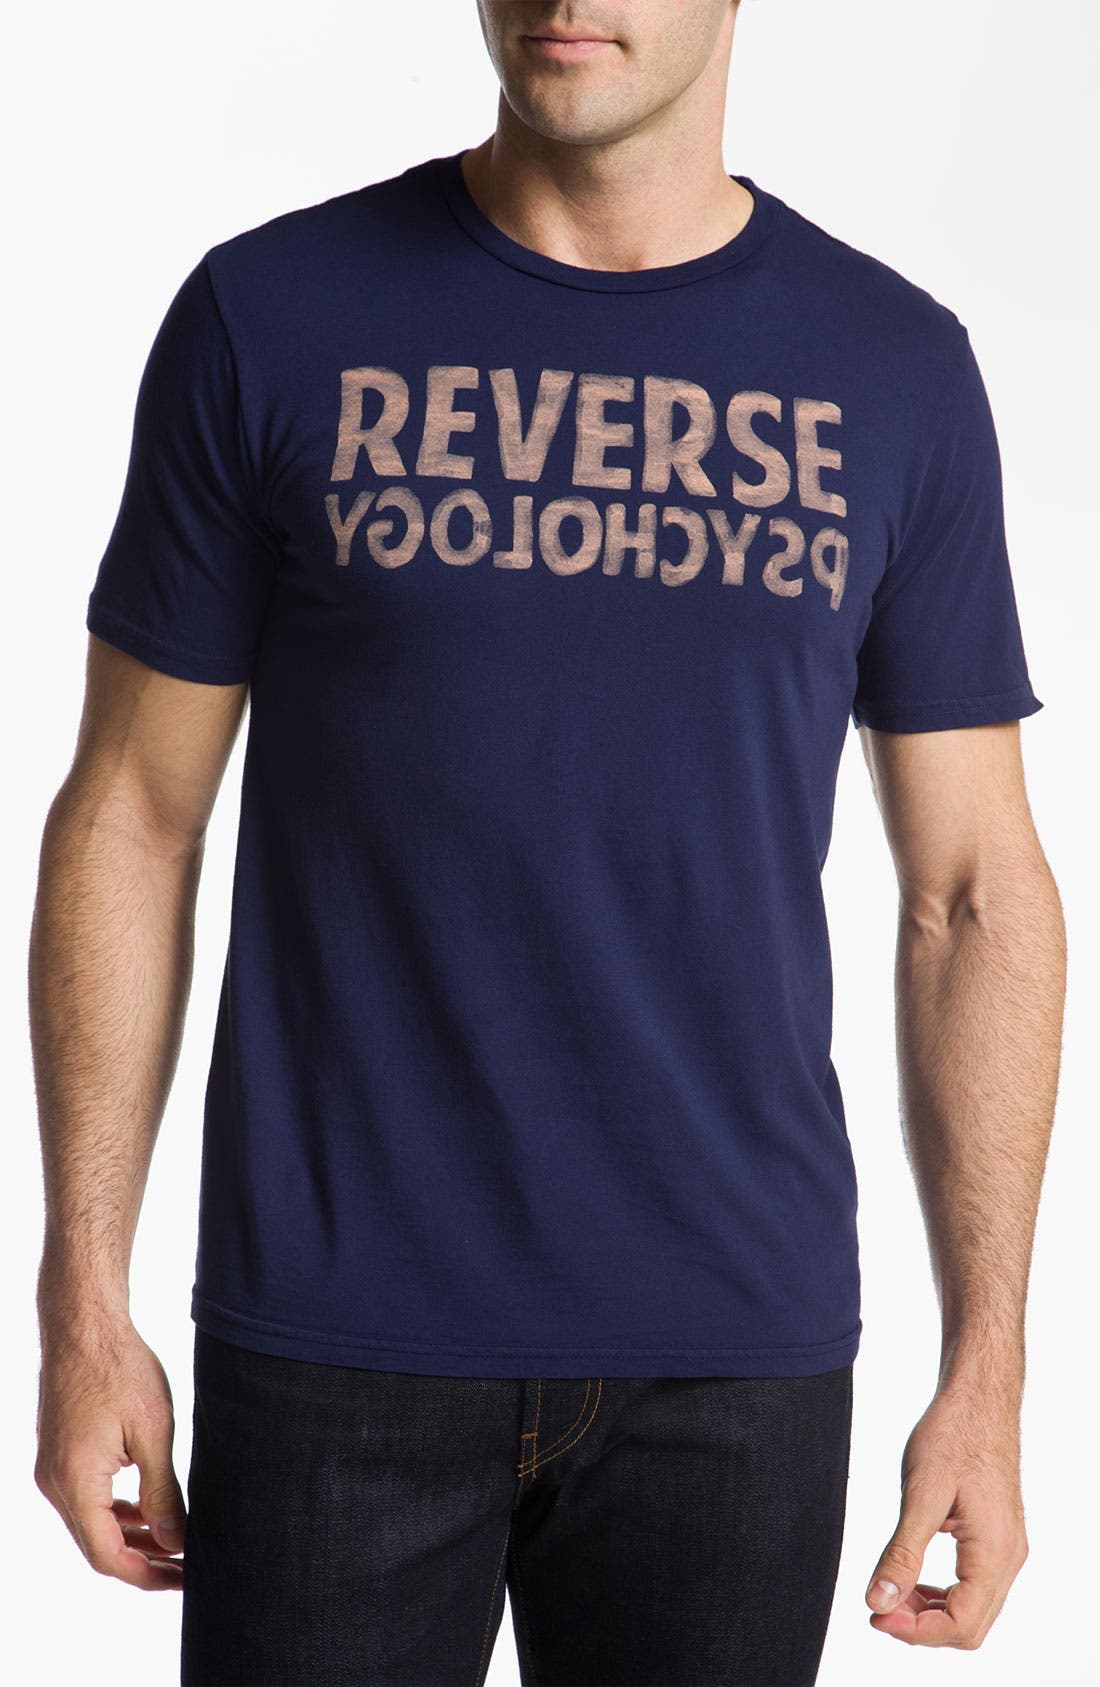 Alternate Image 1 Selected - Chaser 'Reverse Psychology' Graphic T-Shirt